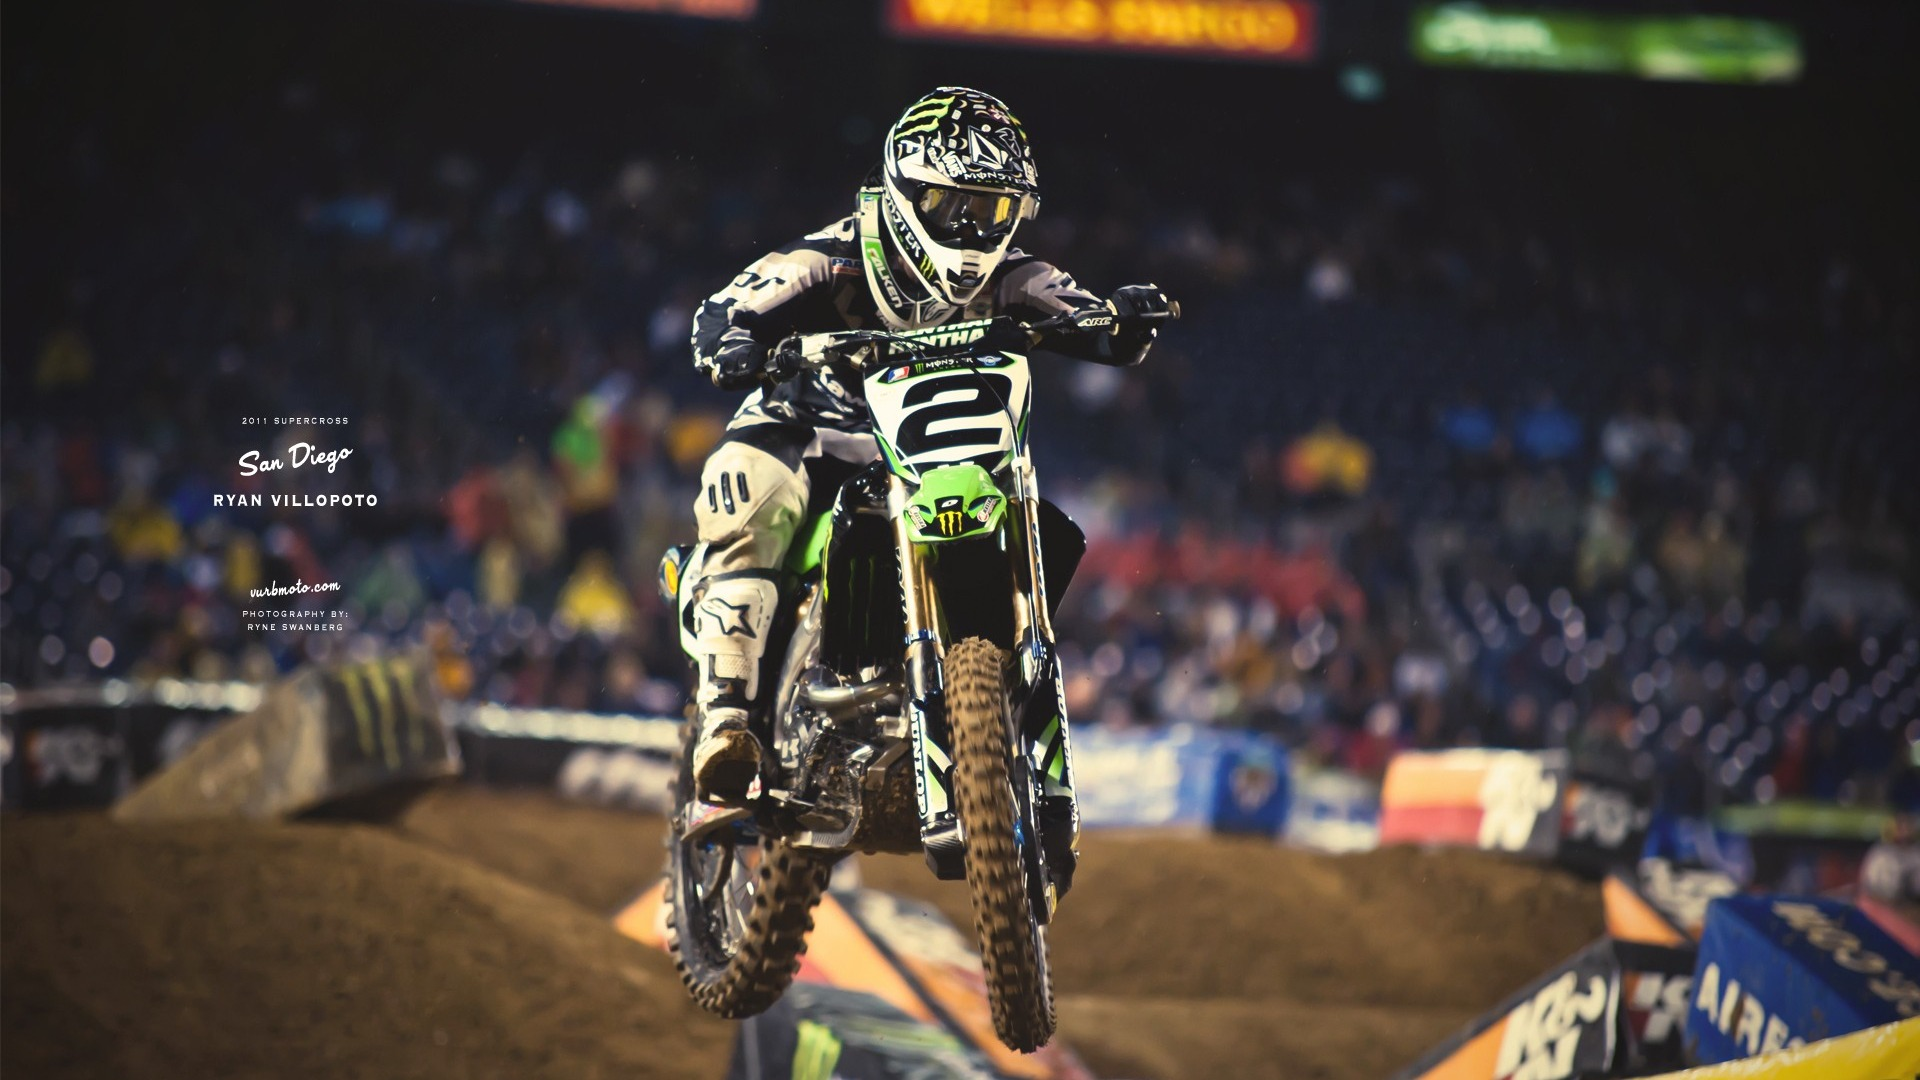 Full Hd Motorcycle Wallpaper Ama Supercross San Diego Rider Ryan Villopoto Preview